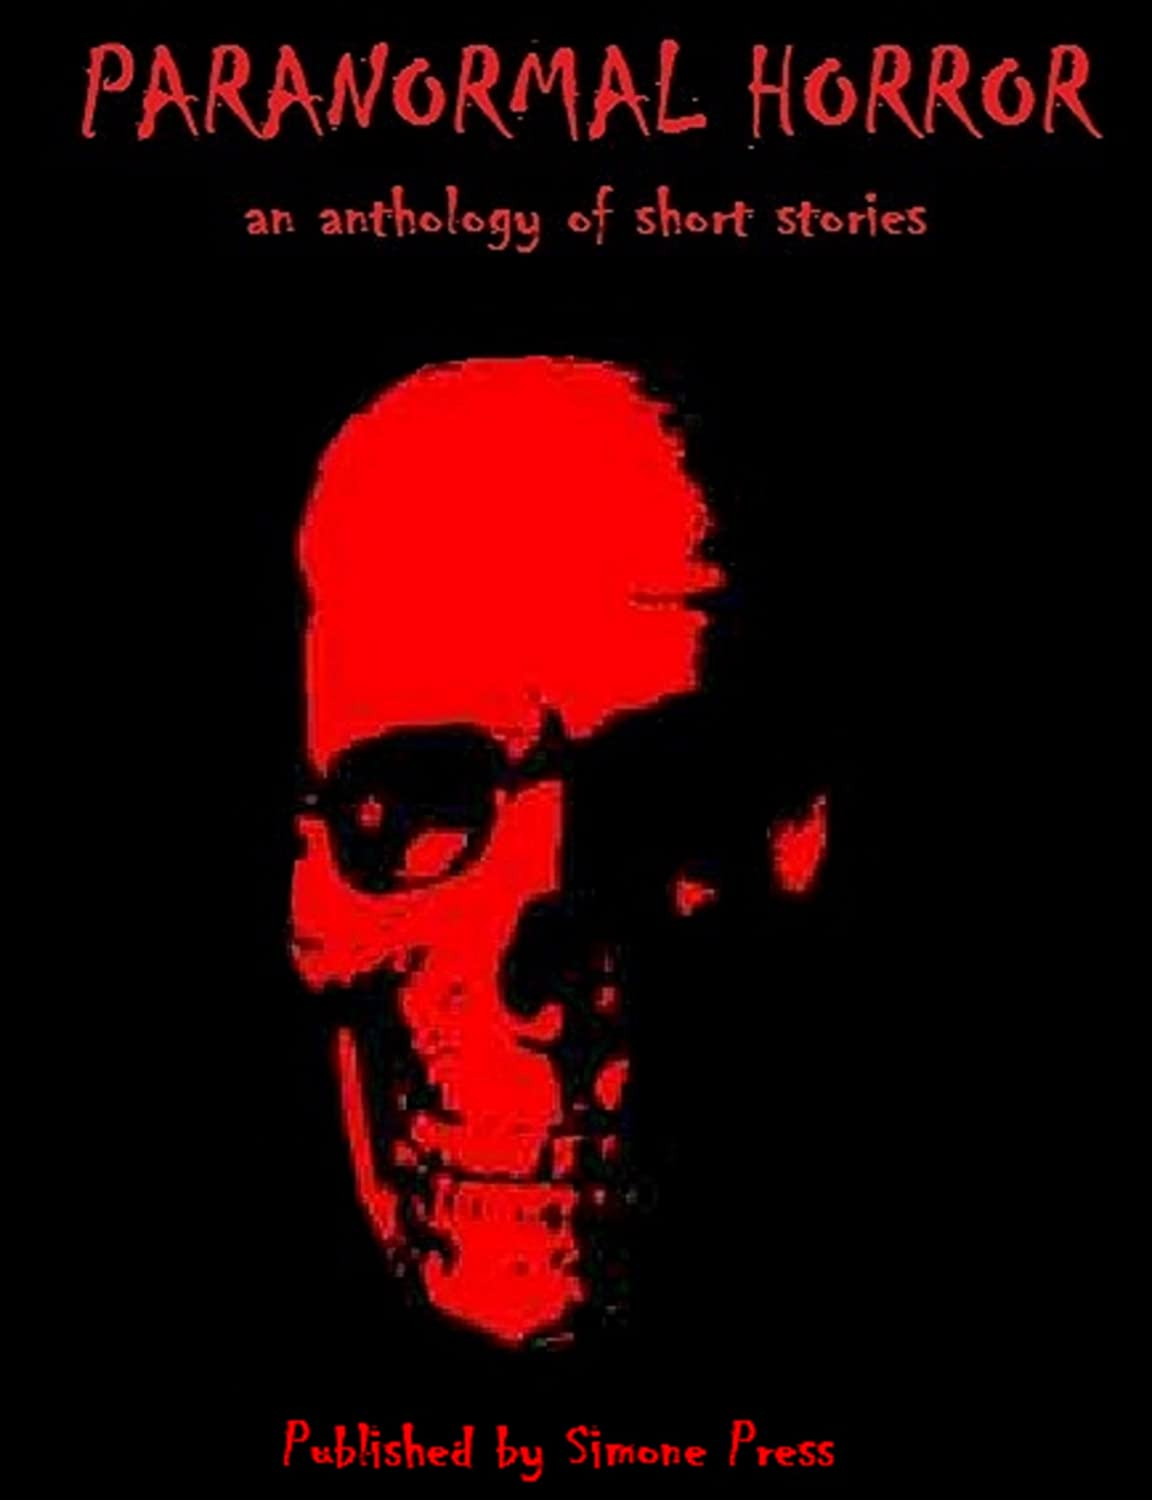 www.amazon.com/Paranormal-Horror-Anthology-Chris-Castle-ebook/dp/B00AMSLRV6/ref=sr_1_1?ie=UTF8&qid=1391308258&sr=8-1&keywords=paranormal+horror+anthology